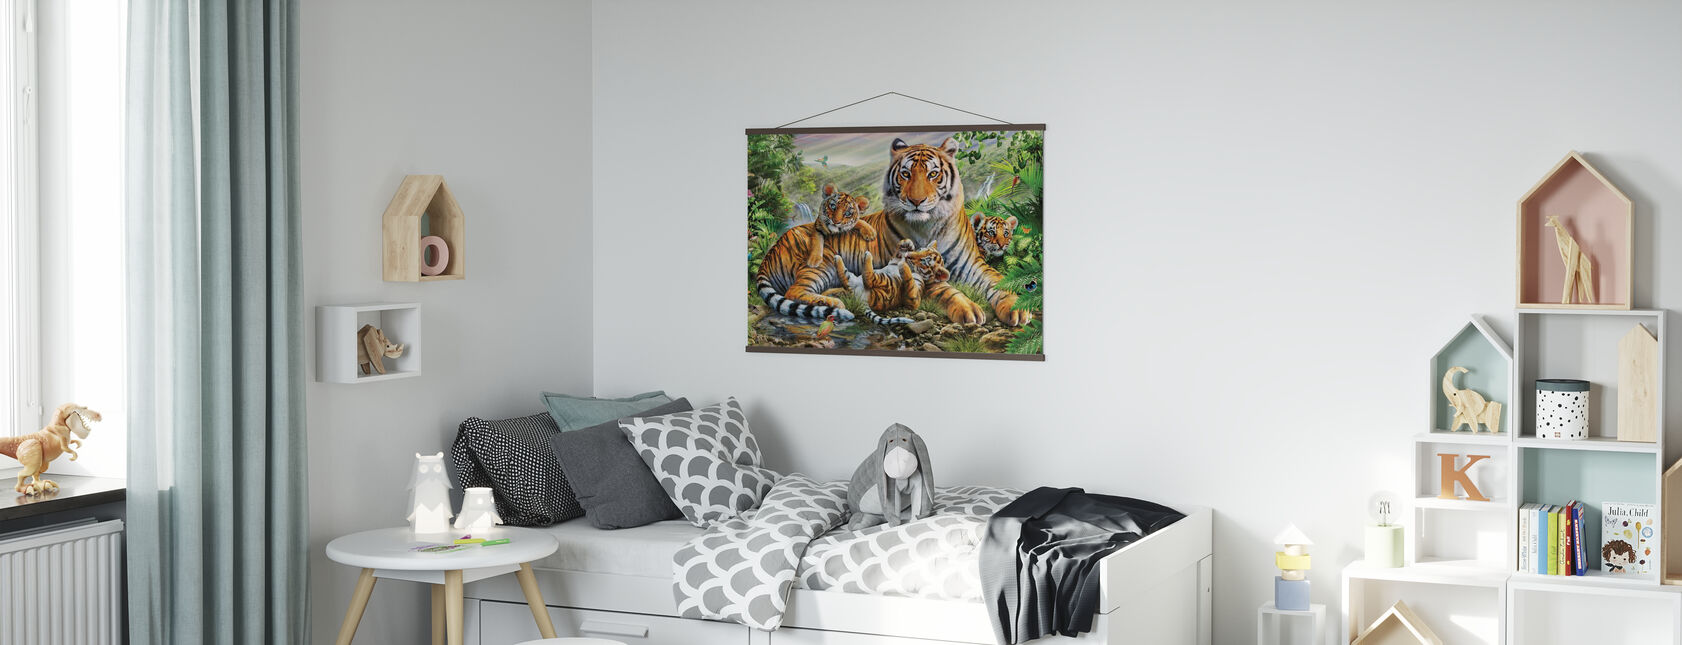 Tiger and Cubs - Poster - Kids Room